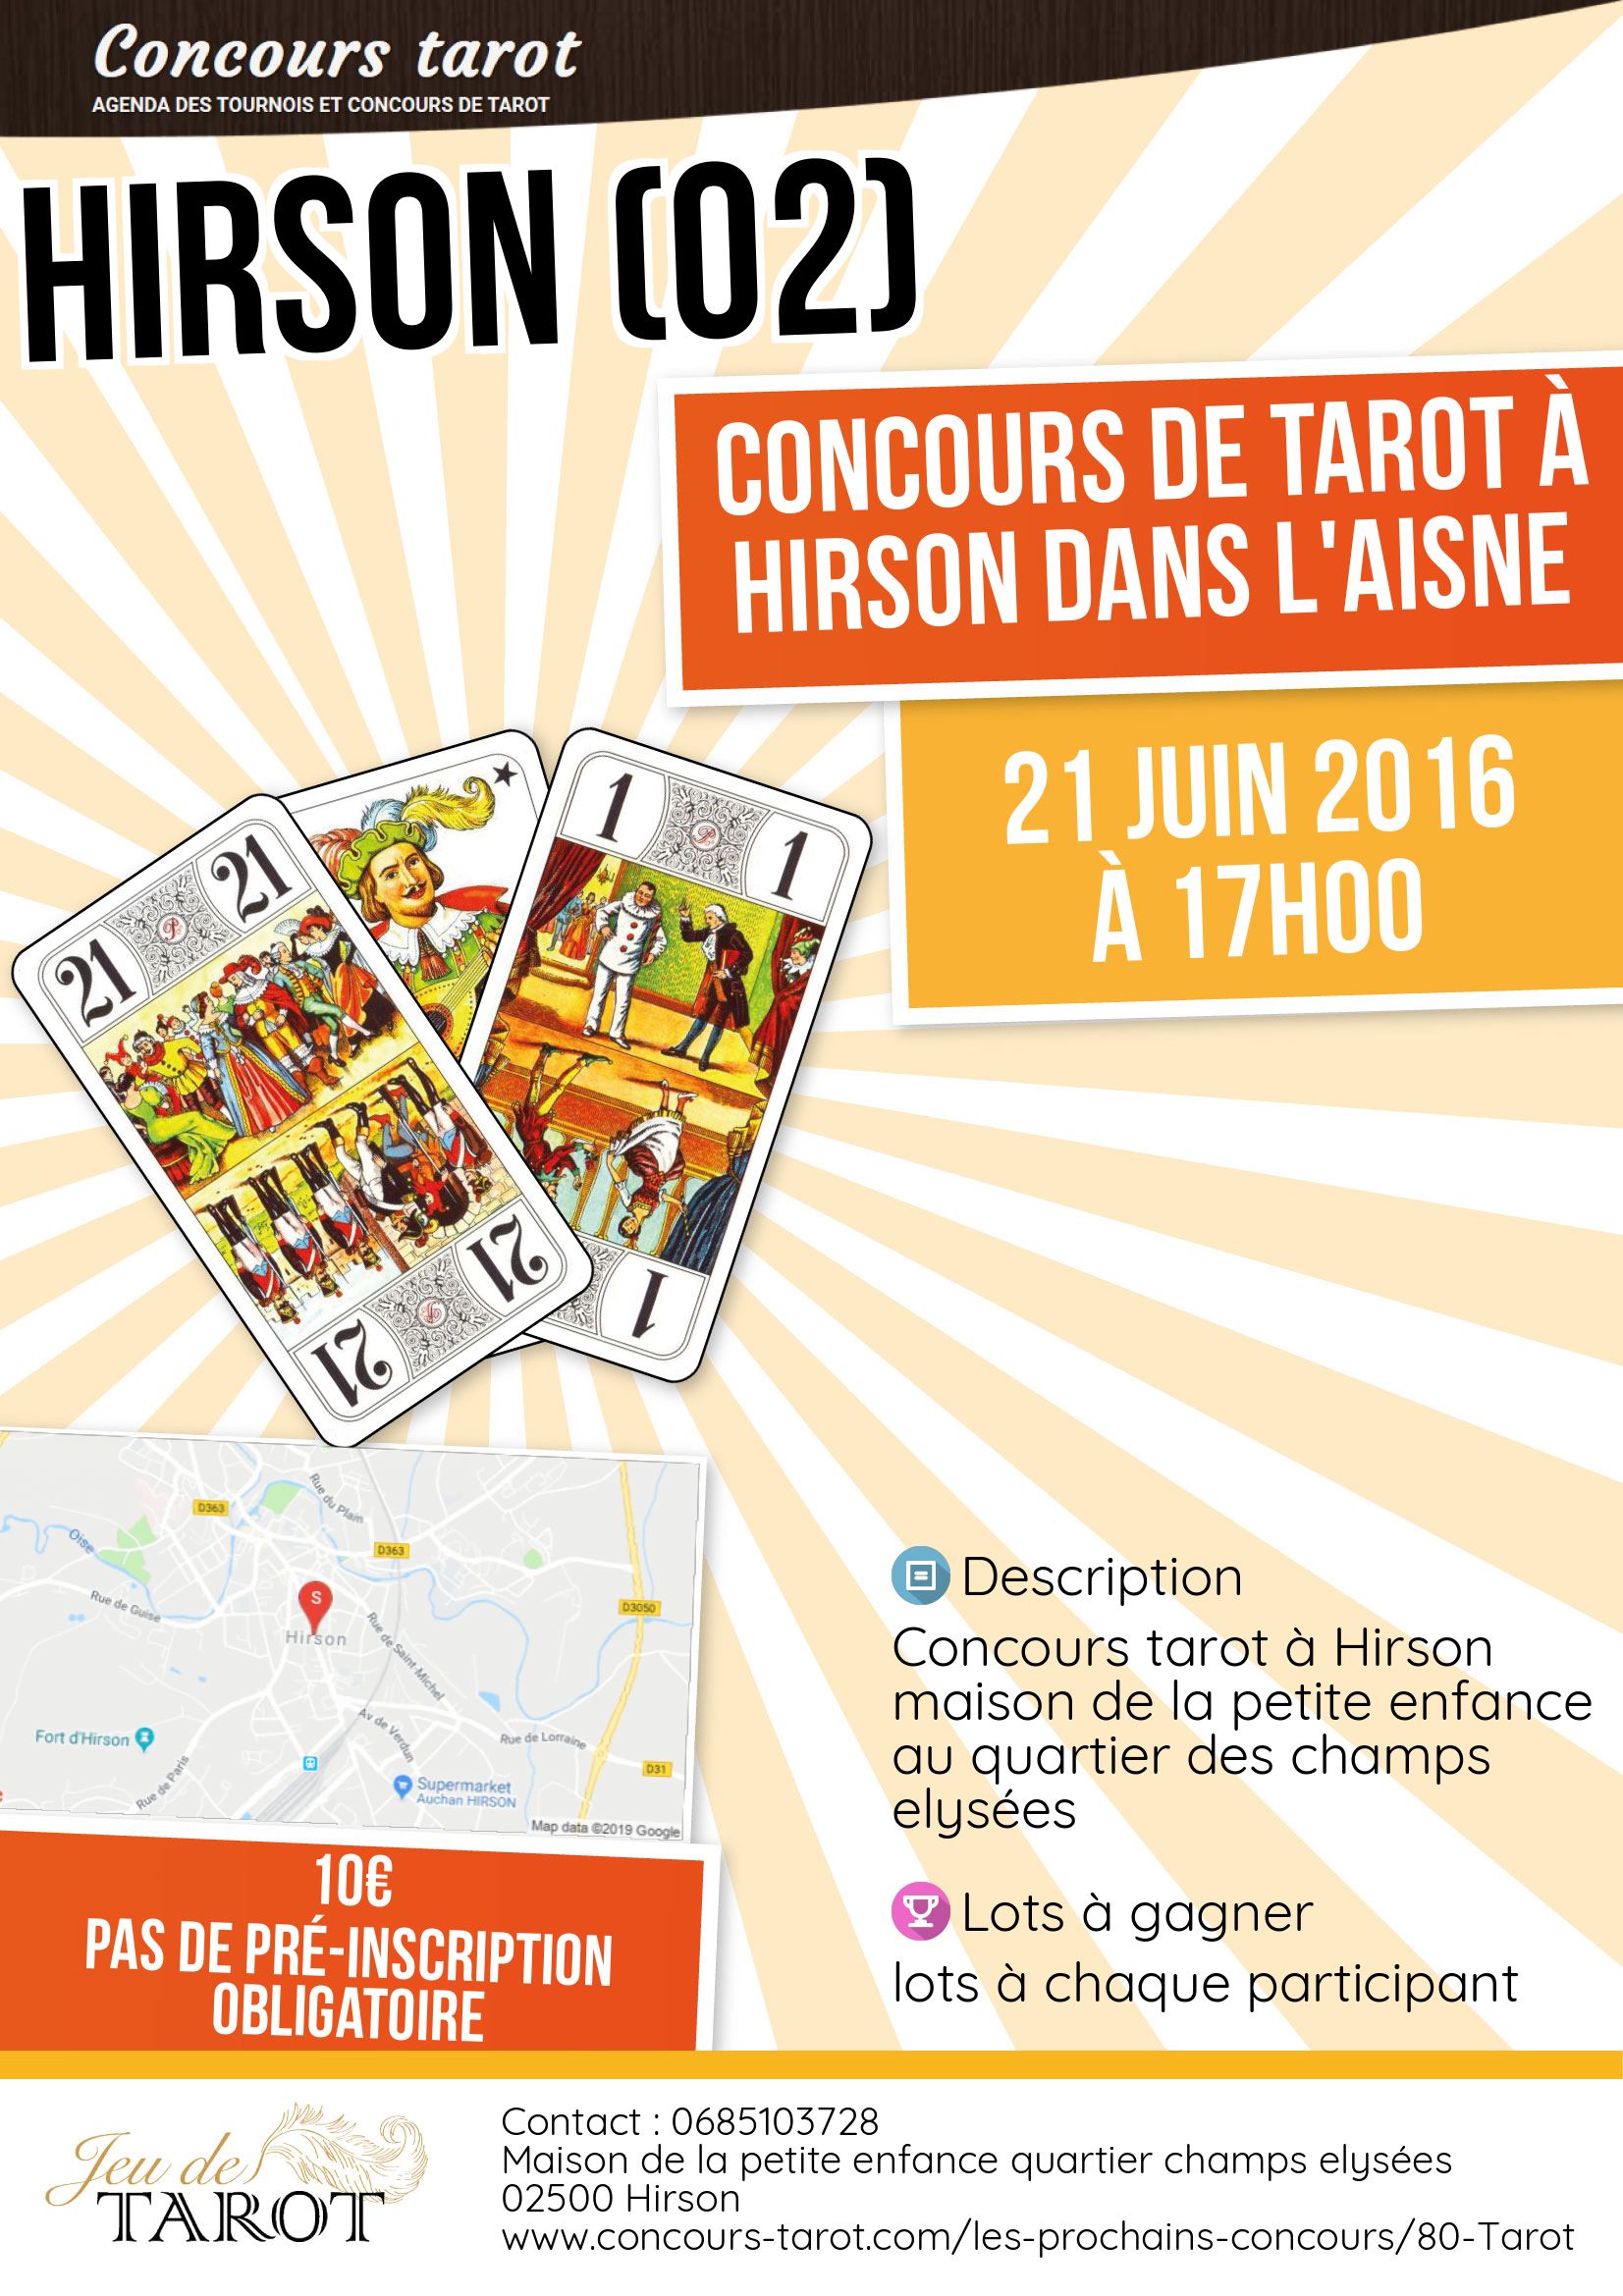 concours de tarot hirson dans l 39 aisne en aisne hirson le 21 juin 2016. Black Bedroom Furniture Sets. Home Design Ideas